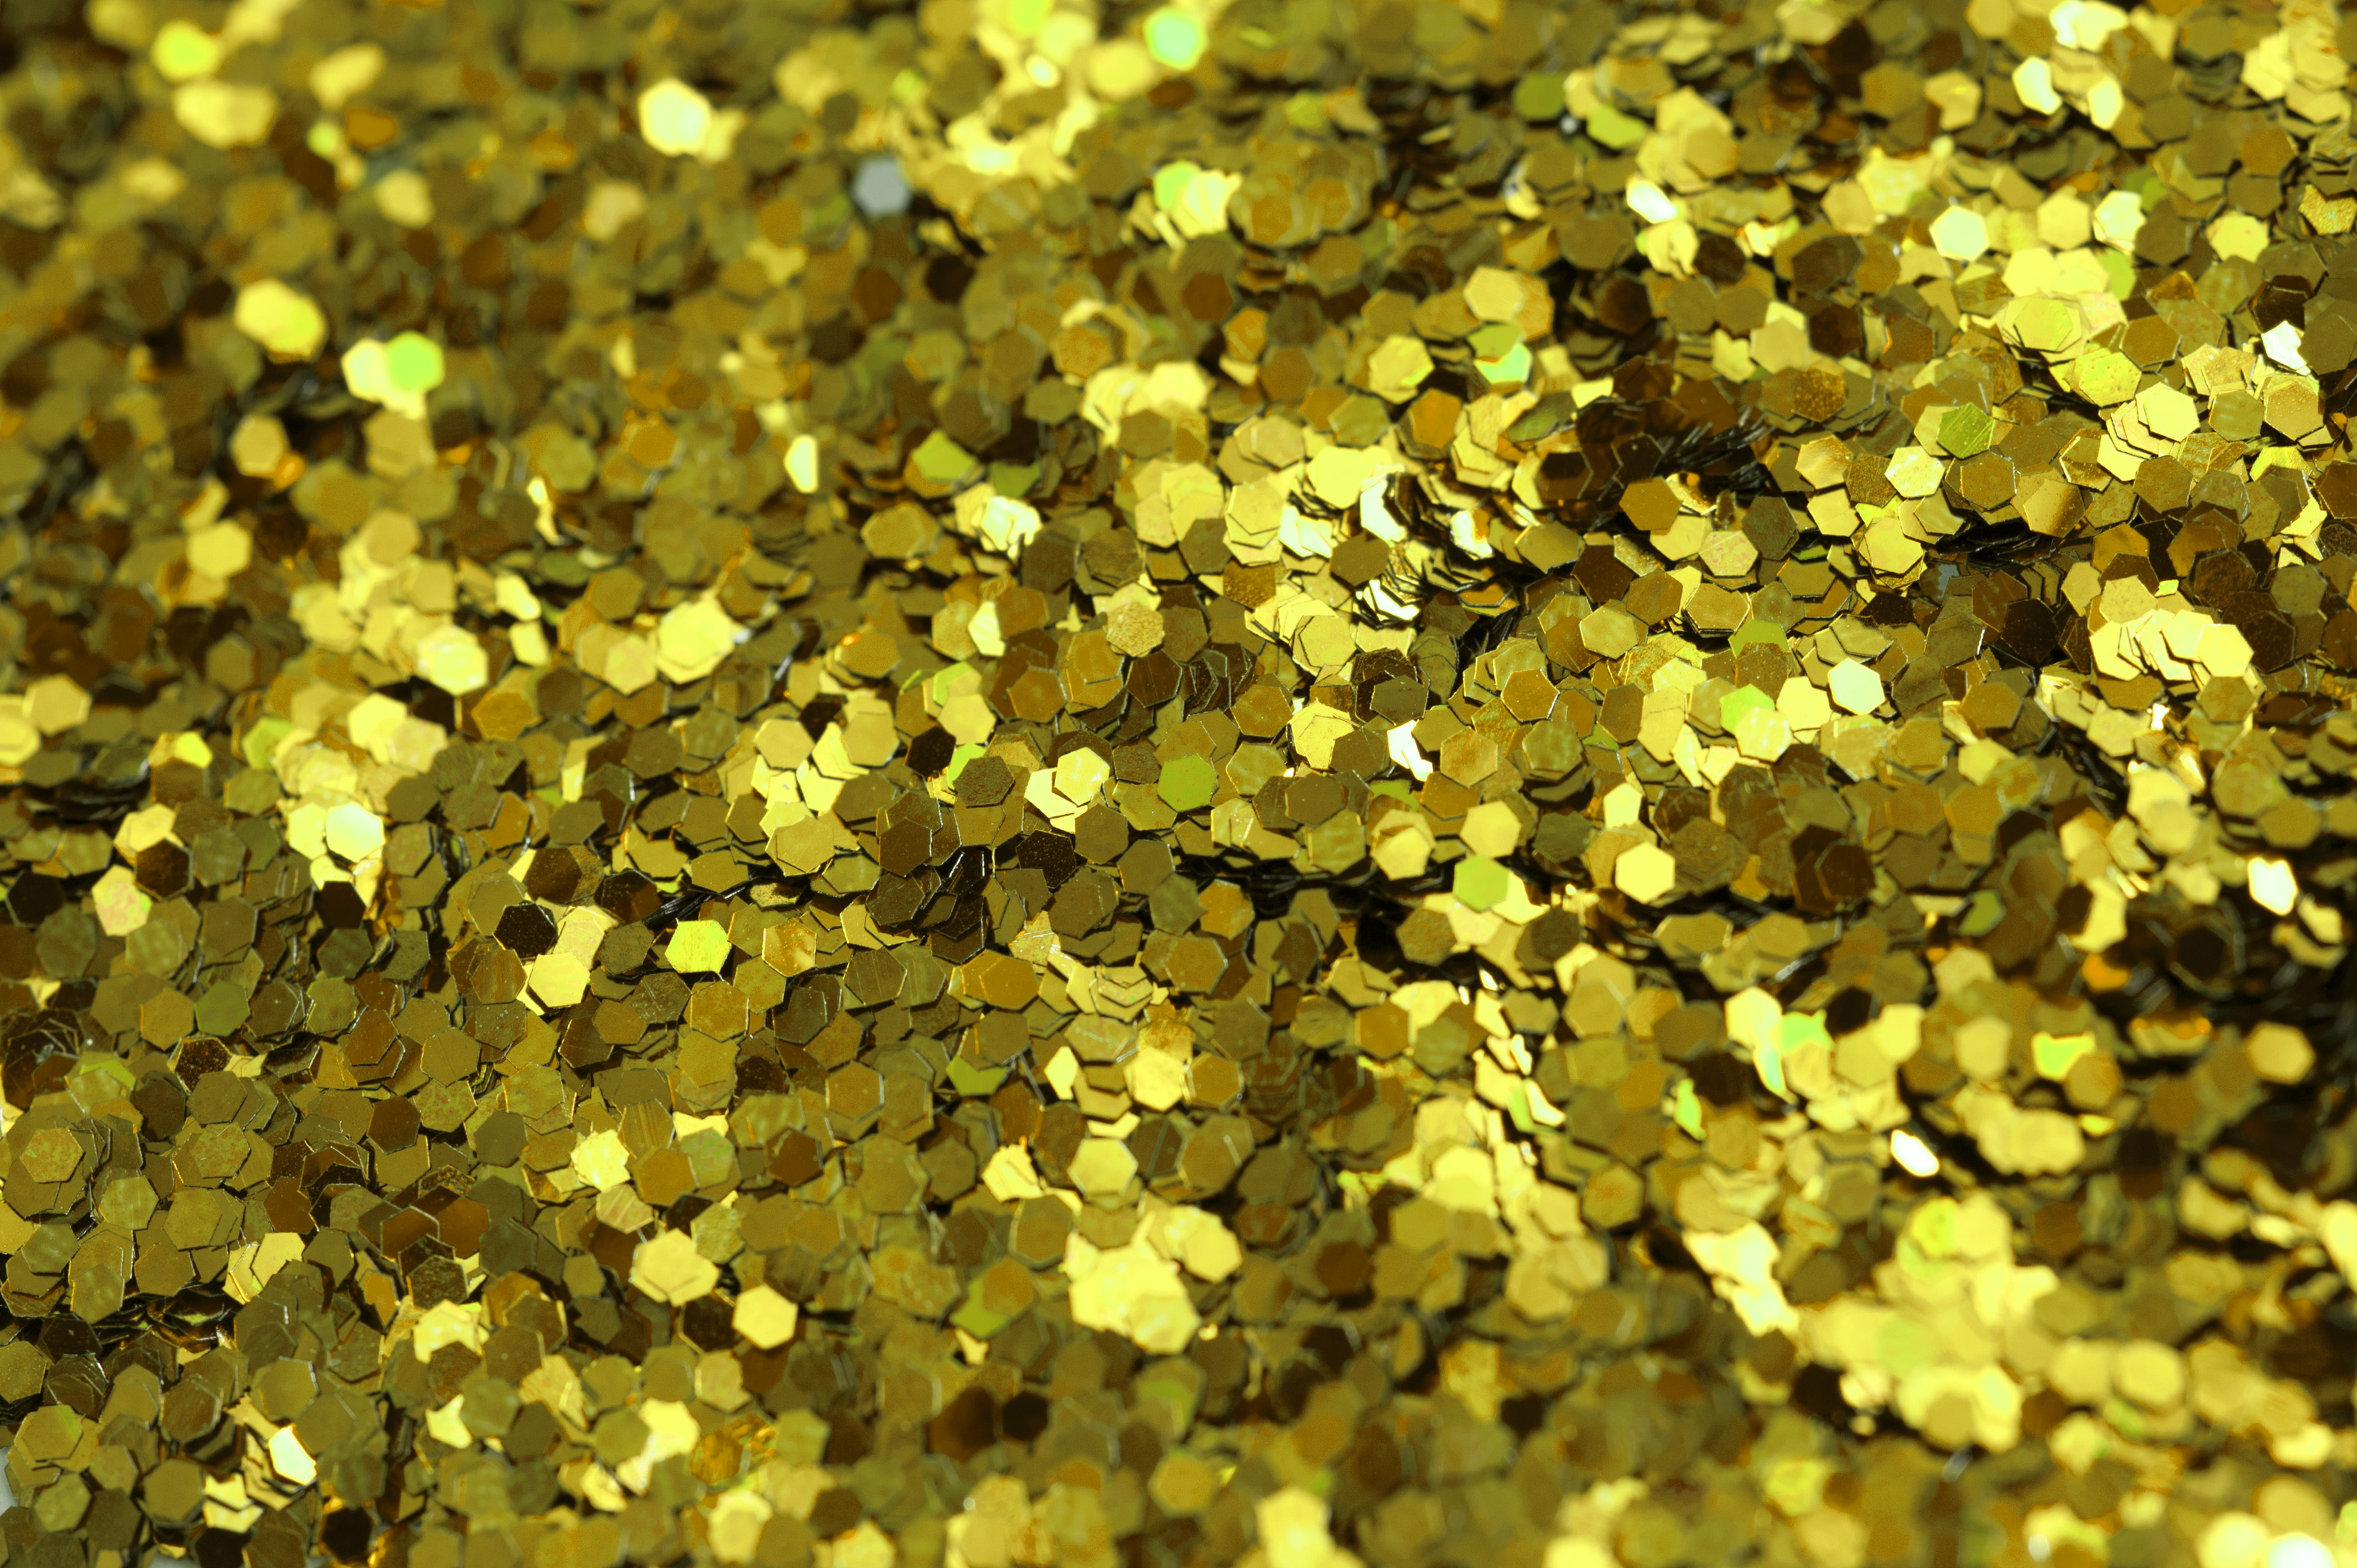 Free Stock Photo 11928 Golden Glitter - freeimageslive